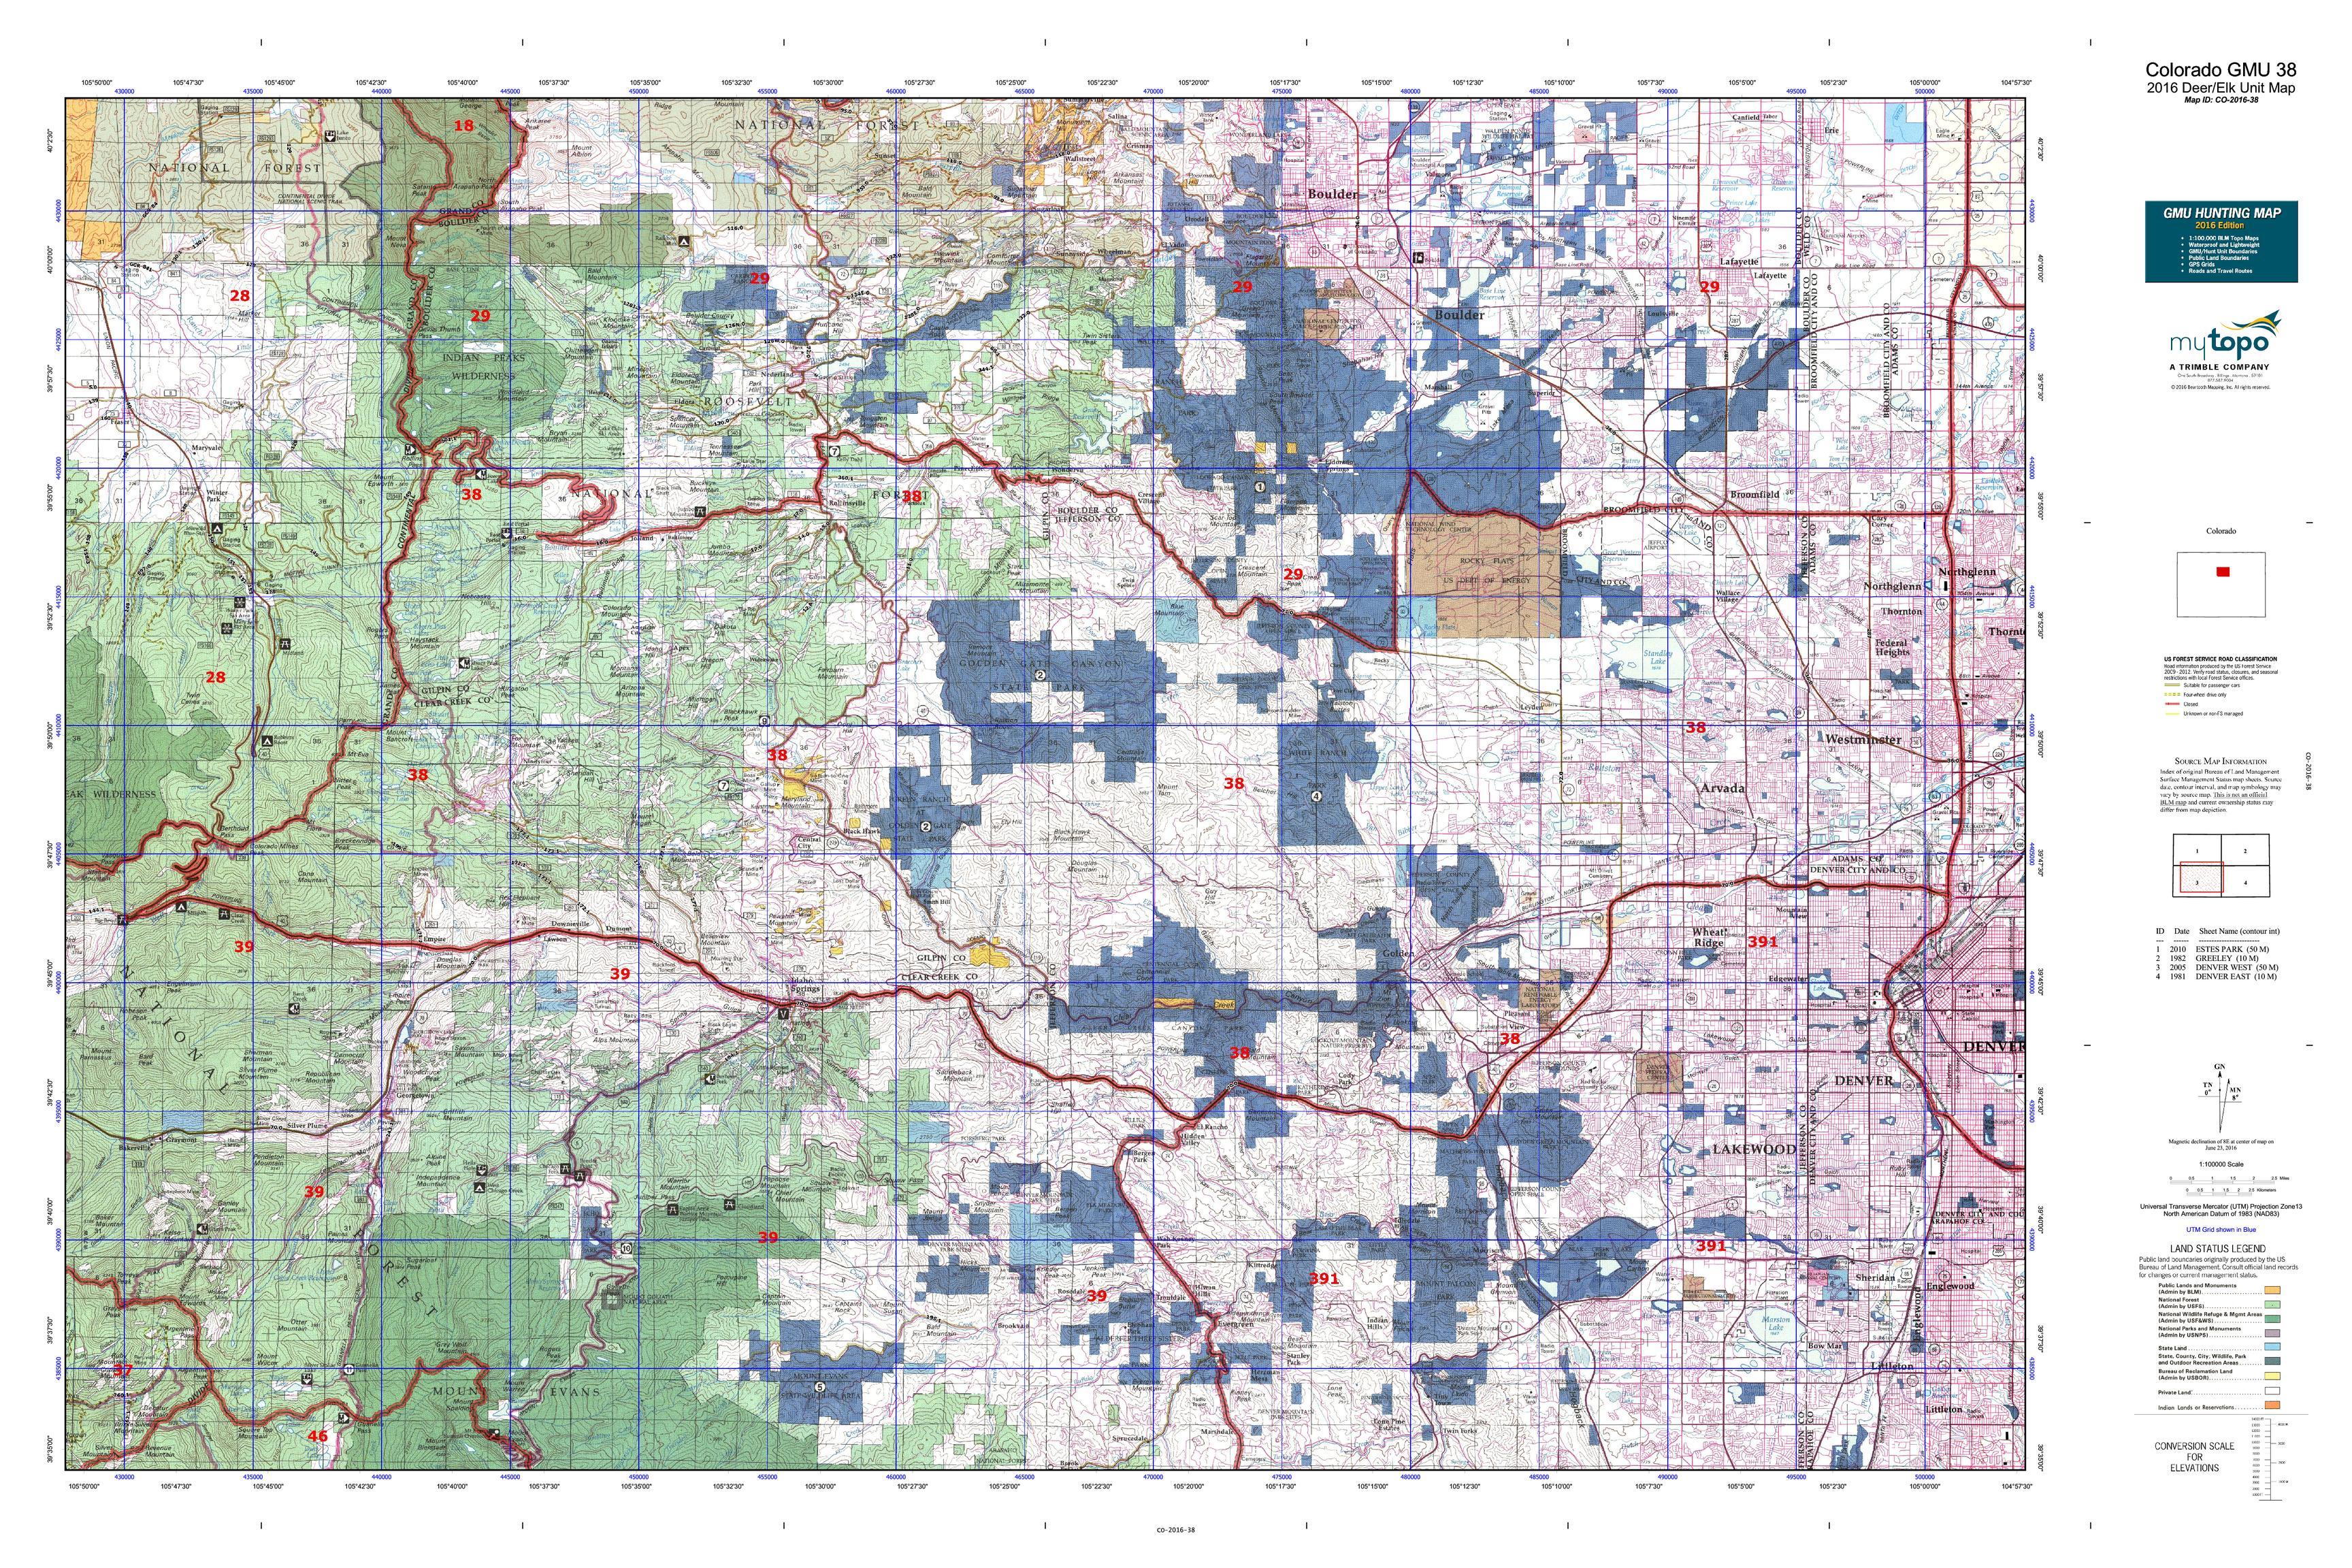 Colorado GMU 38 Map  MyTopo